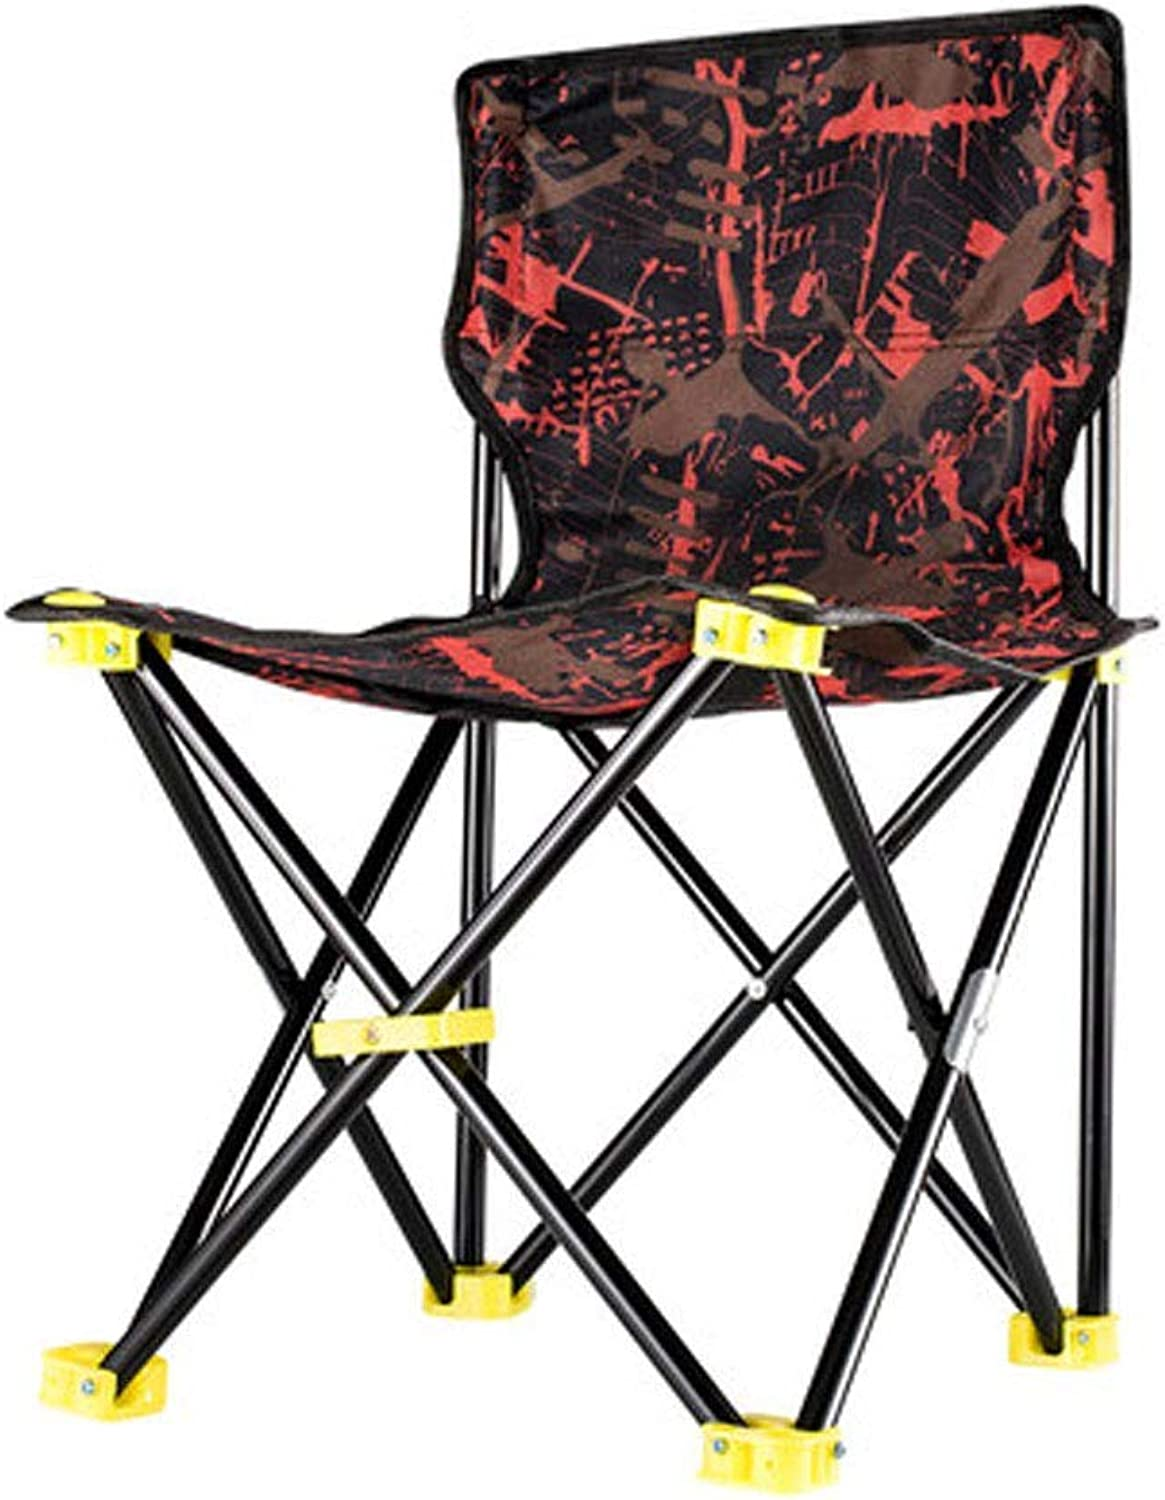 Outdoor Leisure Folding Chair  Multifunctional Portable Fishing Beach Camping Garden Balcony Comfortable Light Lazy Chair,35  35  59cm